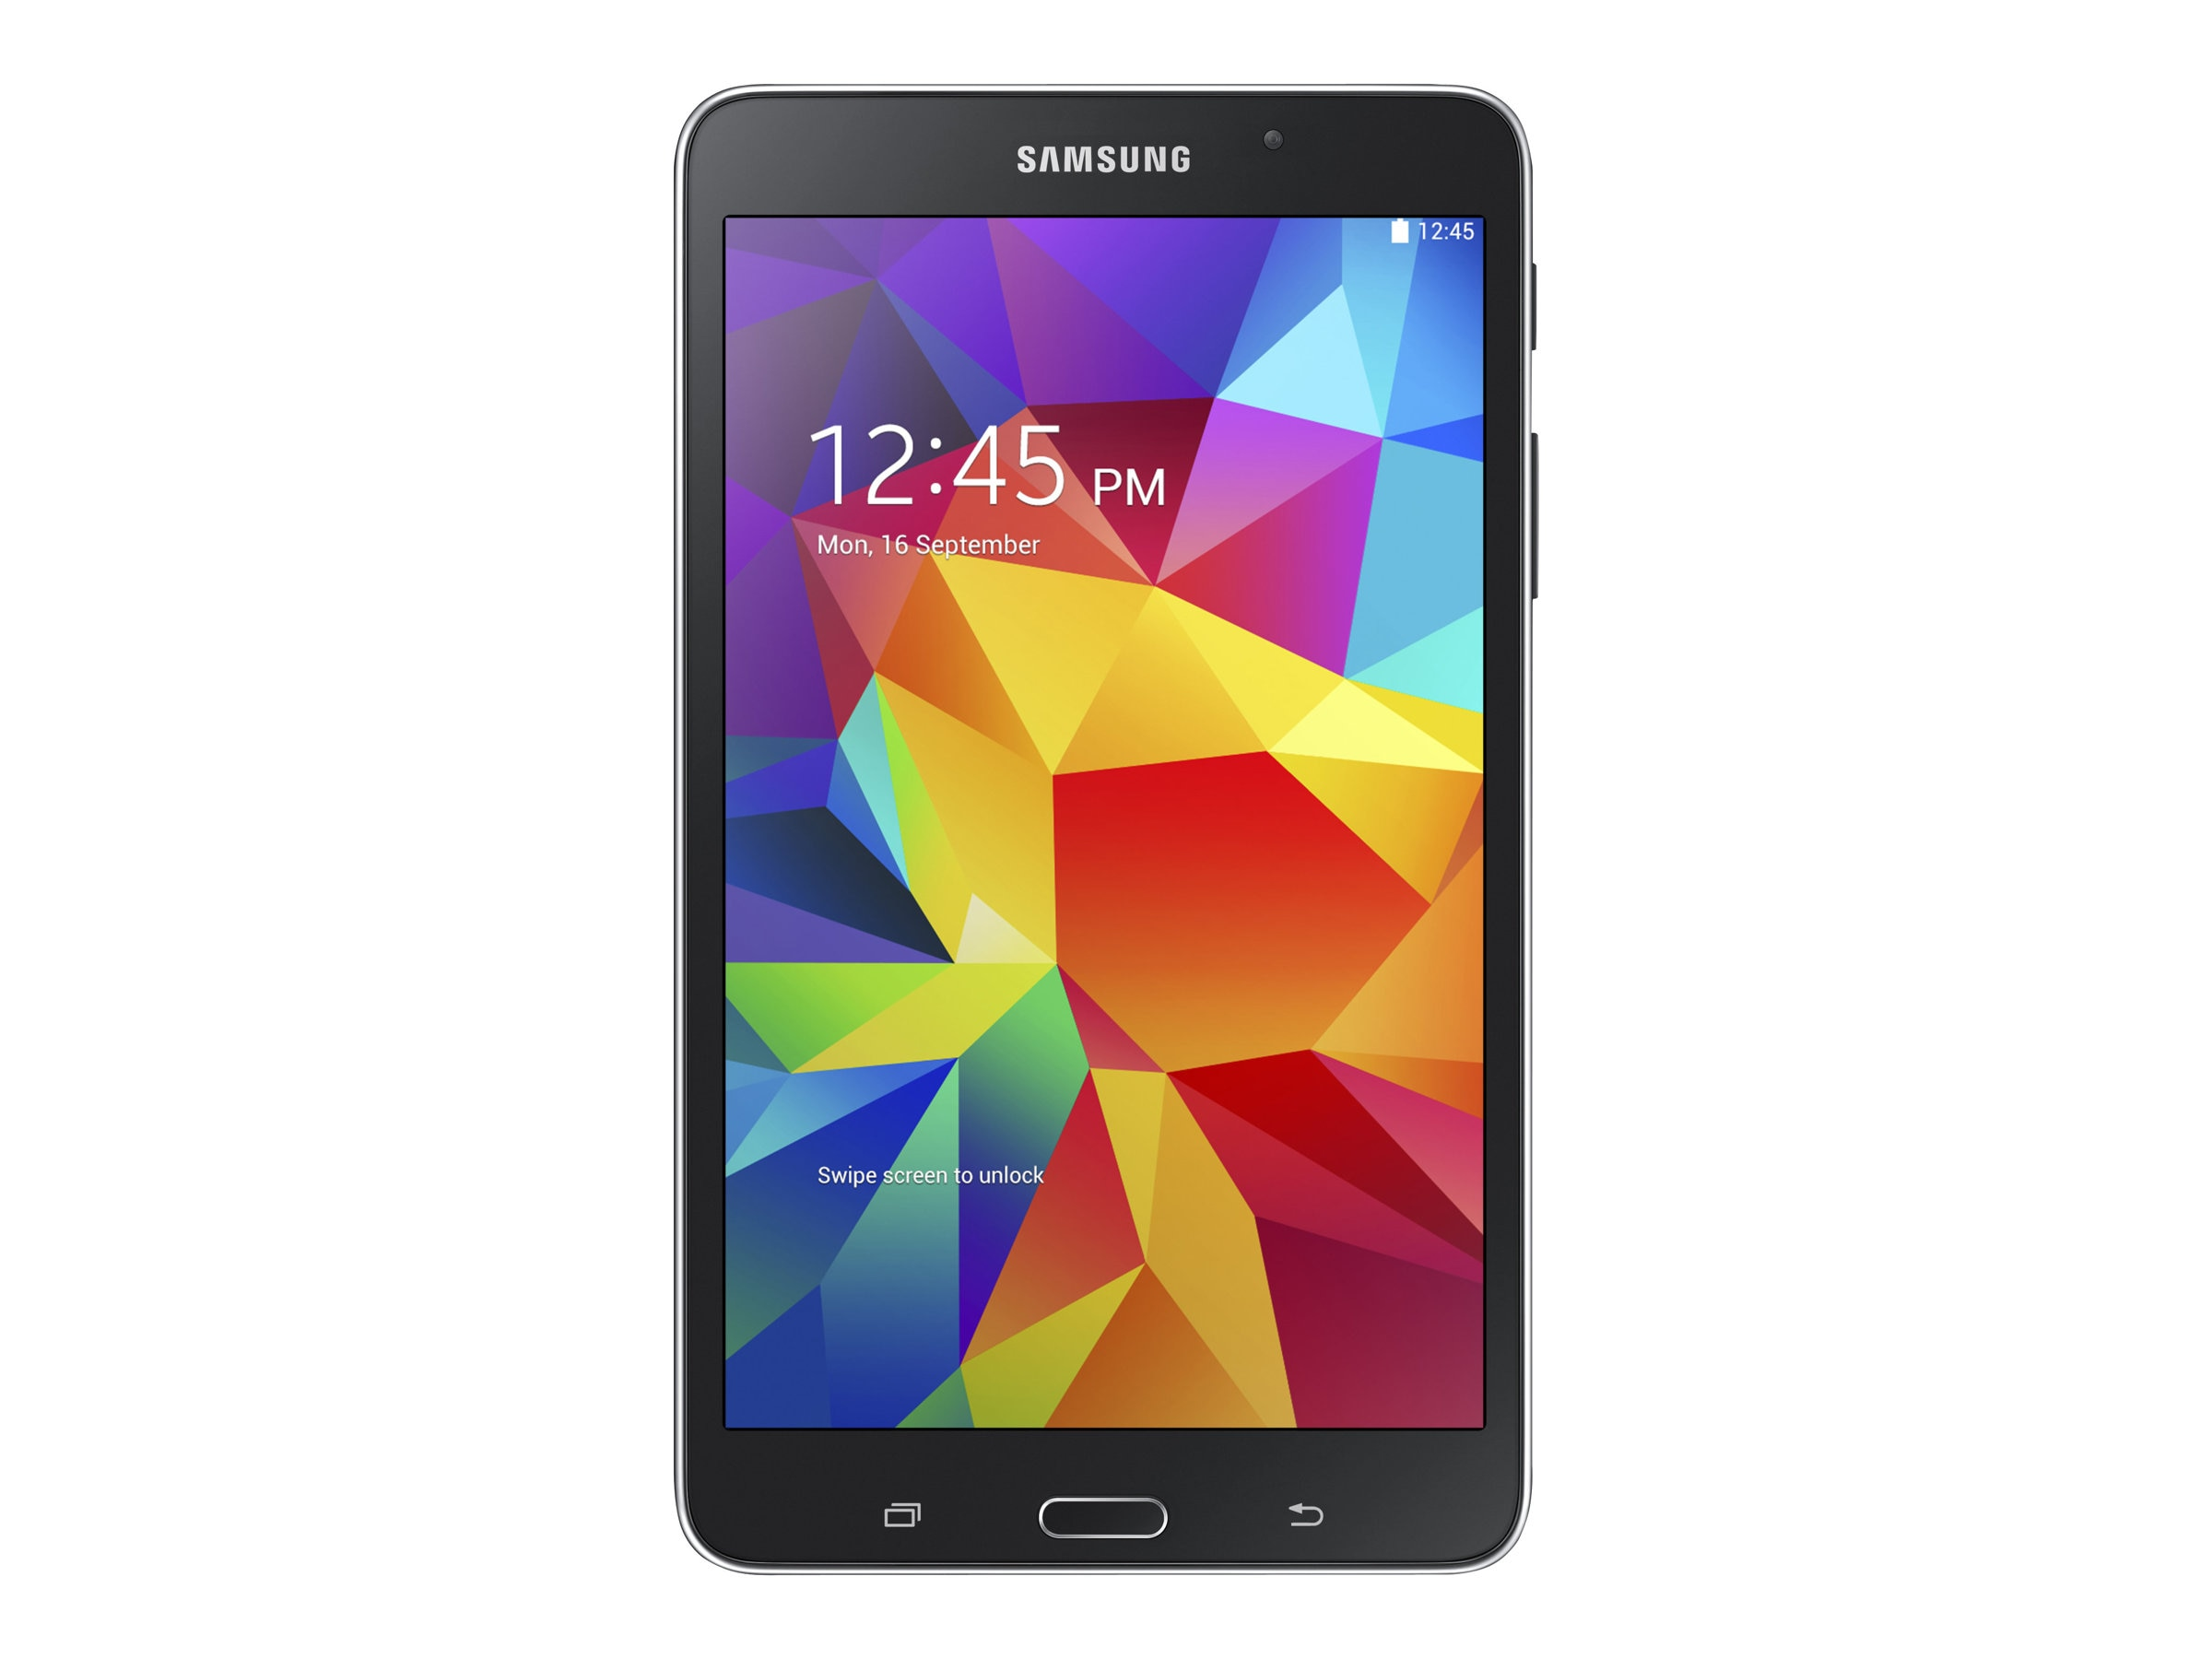 Samsung Galaxy Tab 4 1.2GHz processor Android 4.4 (KitKat), SM-T230NYKAXAR, 17054689, Tablets